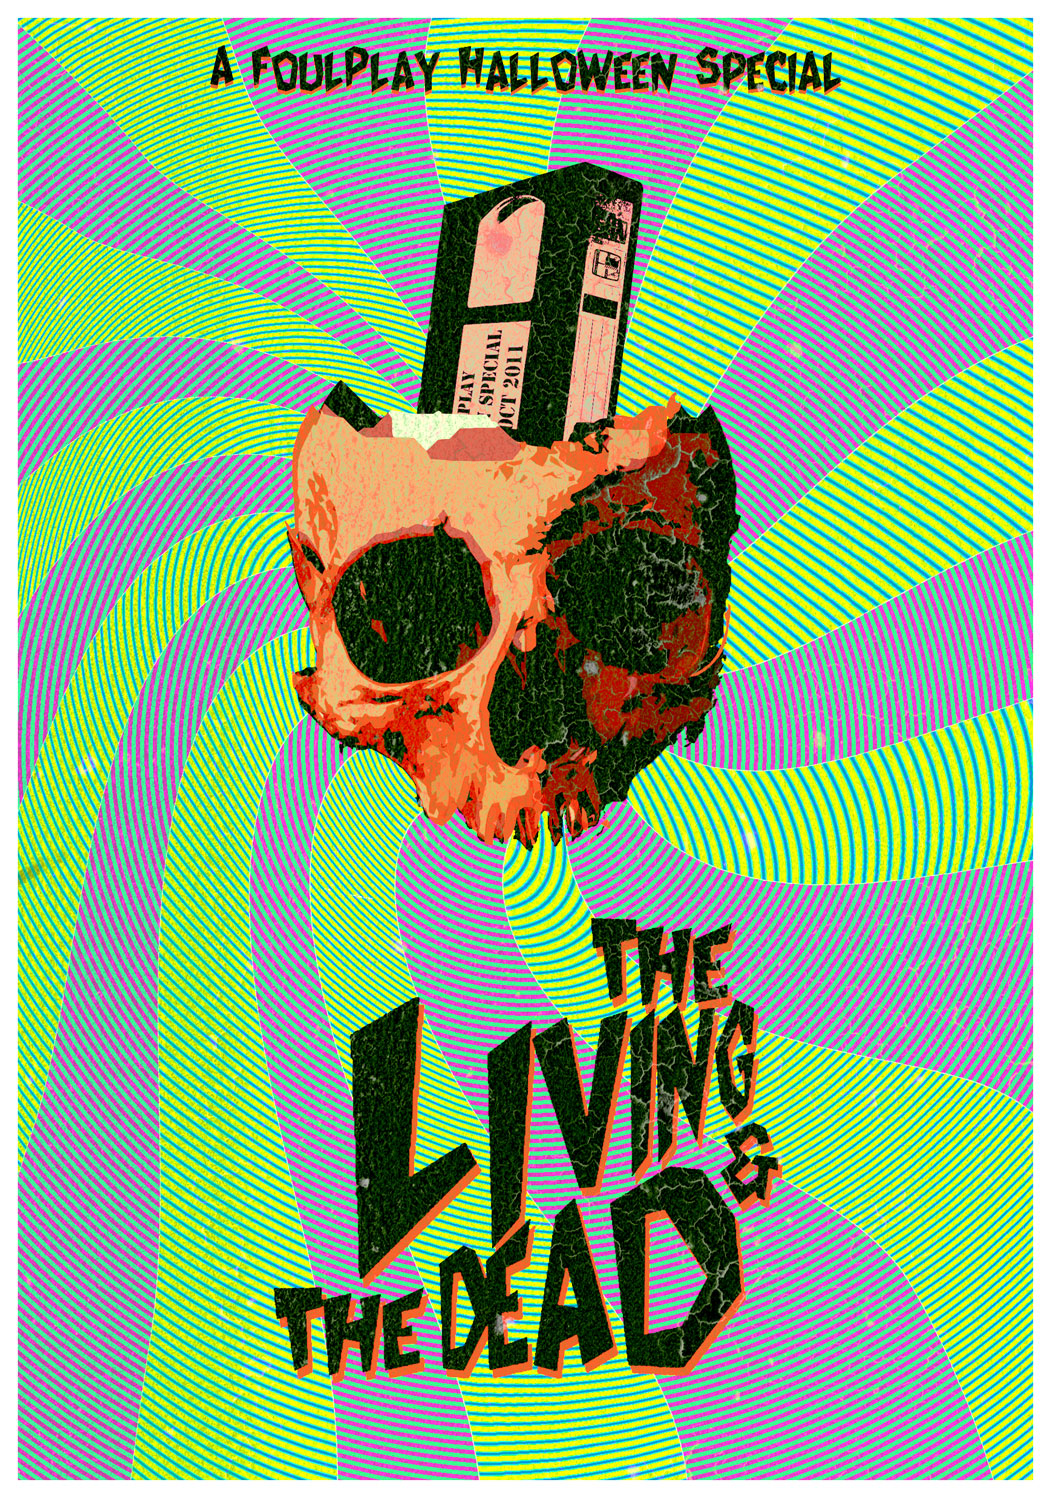 ulysses-black---foulplays-living-and-dead-flyer-front.jpg